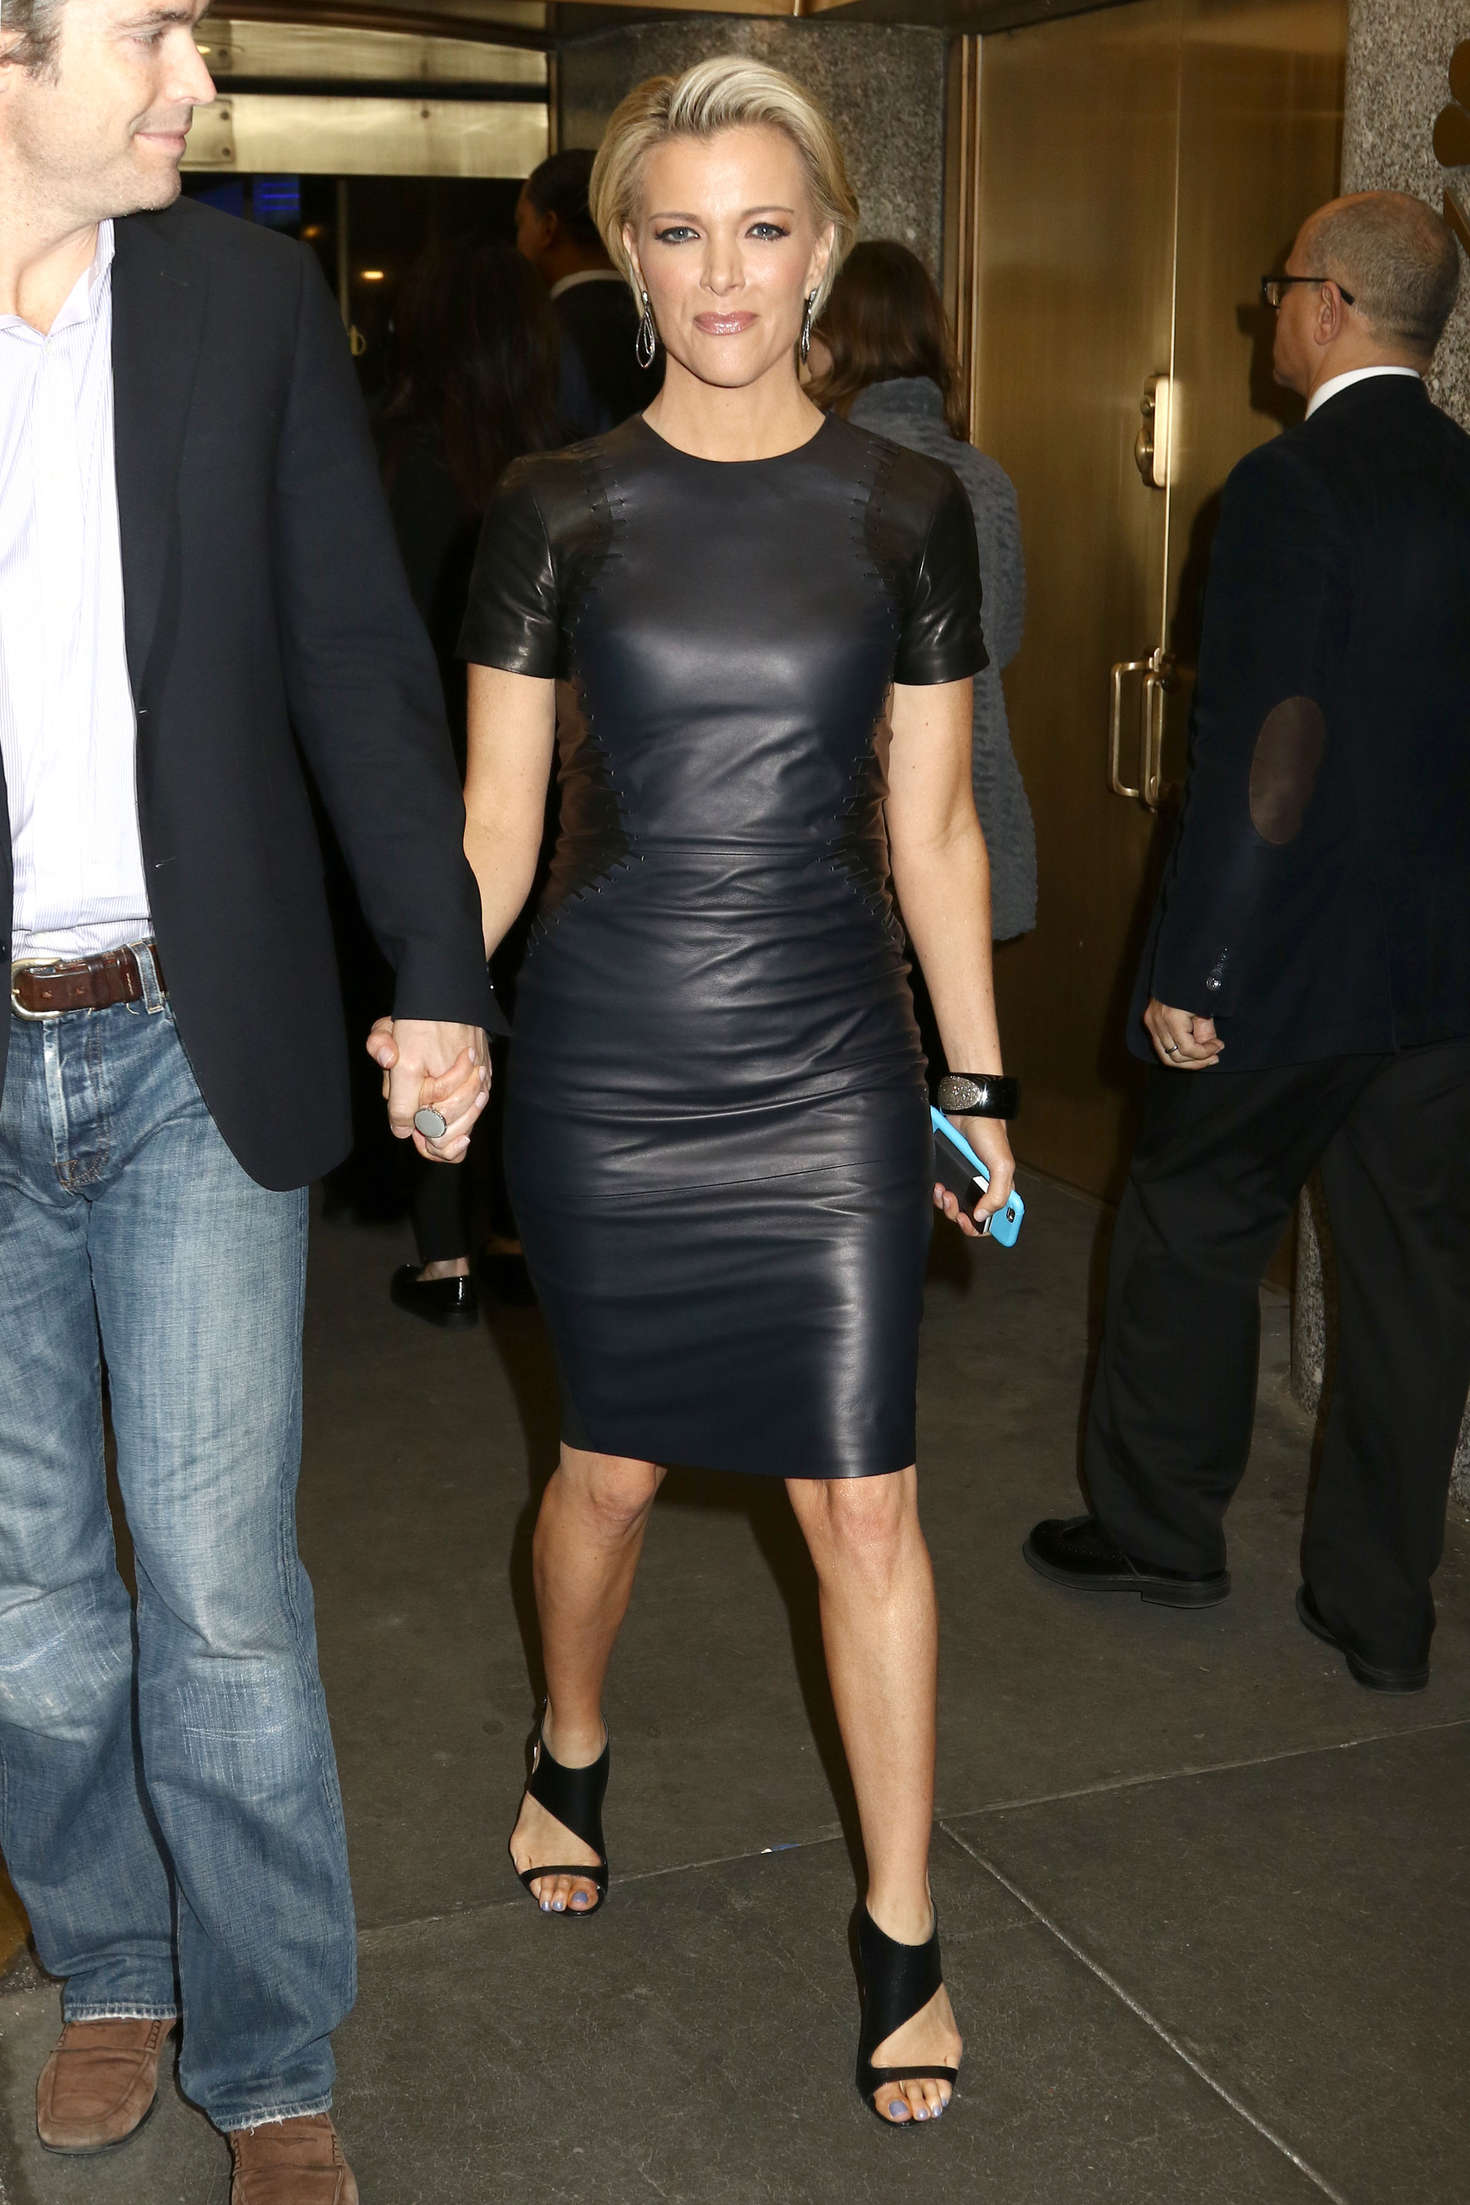 megyn kelly out in nyc gotceleb